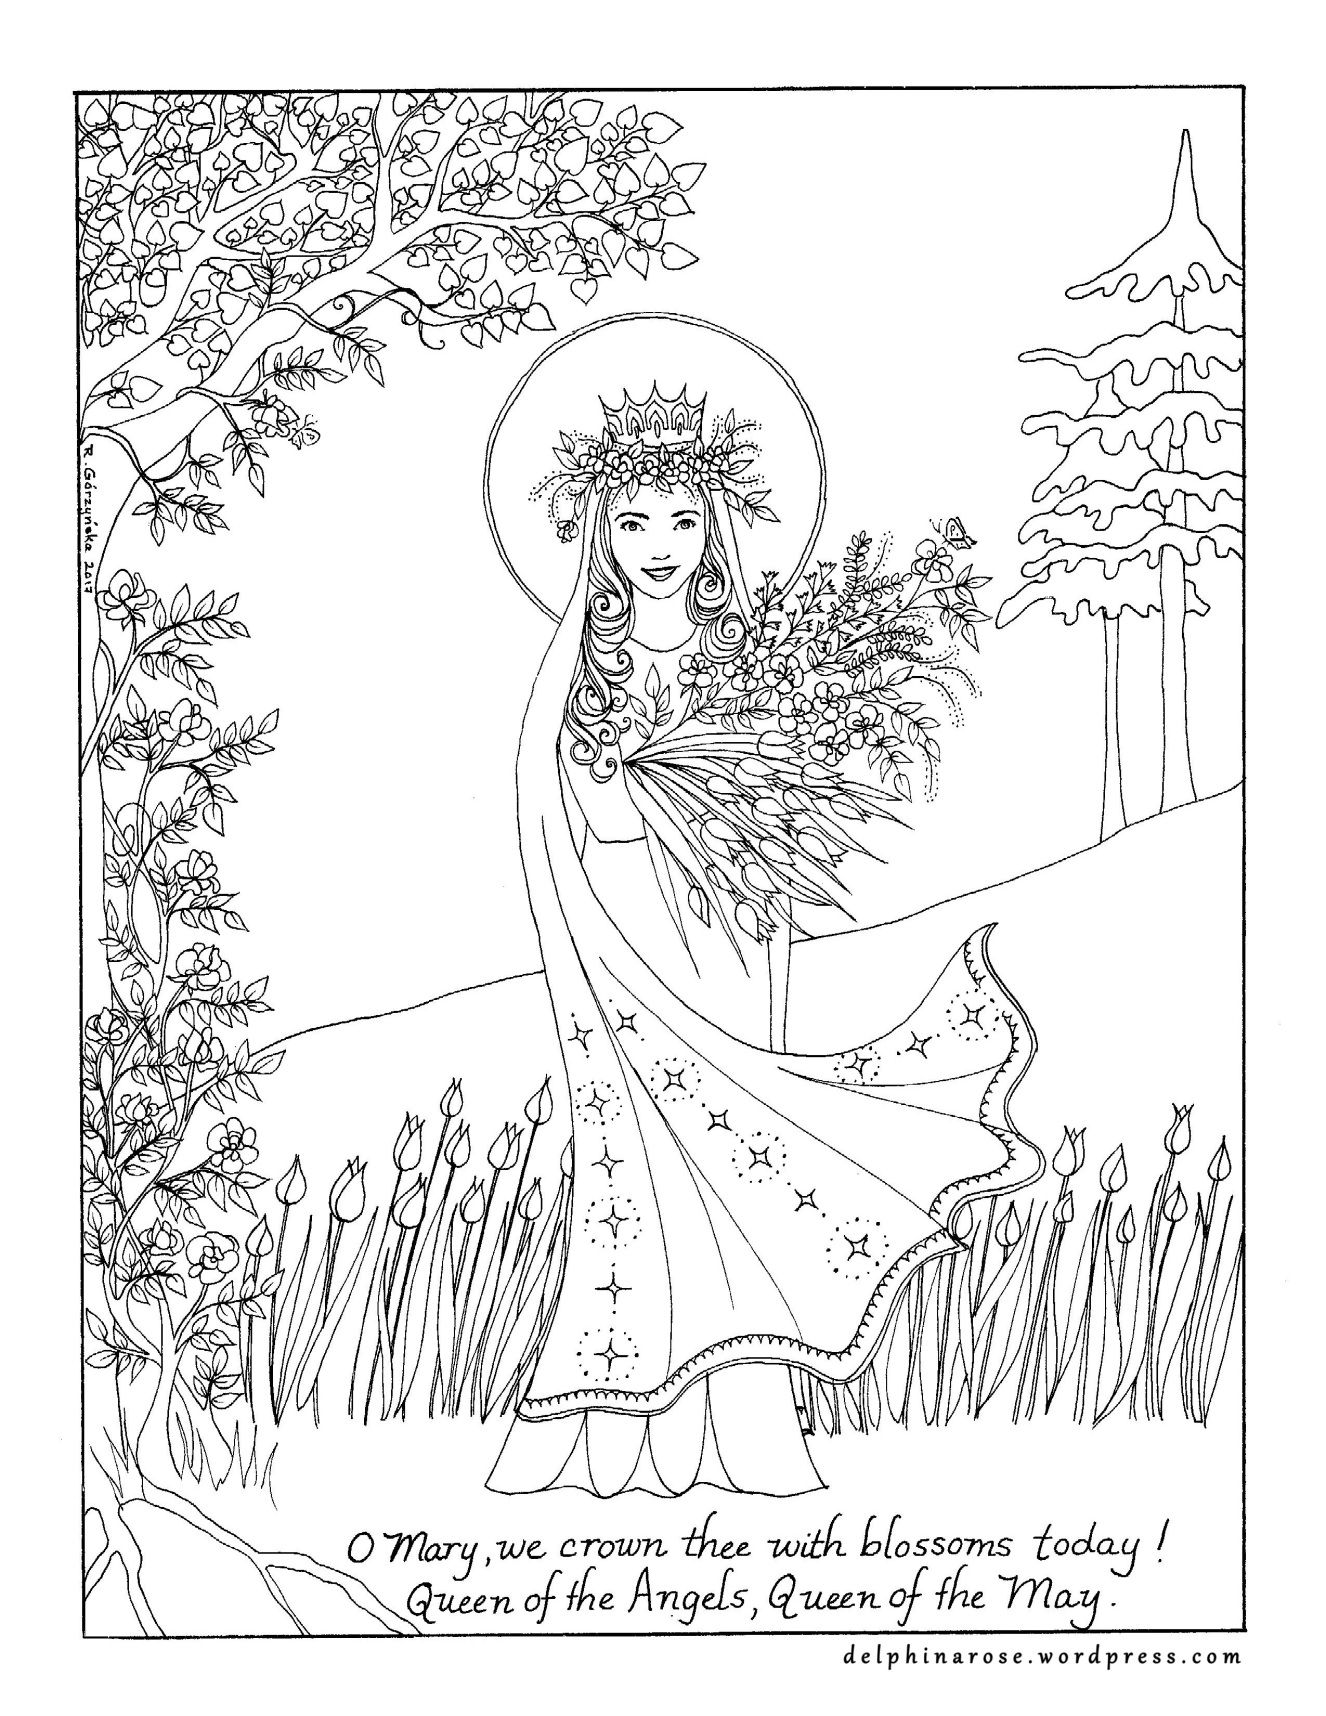 May Queen — Catholic Coloring Page | Queen mary, Mary and Queens